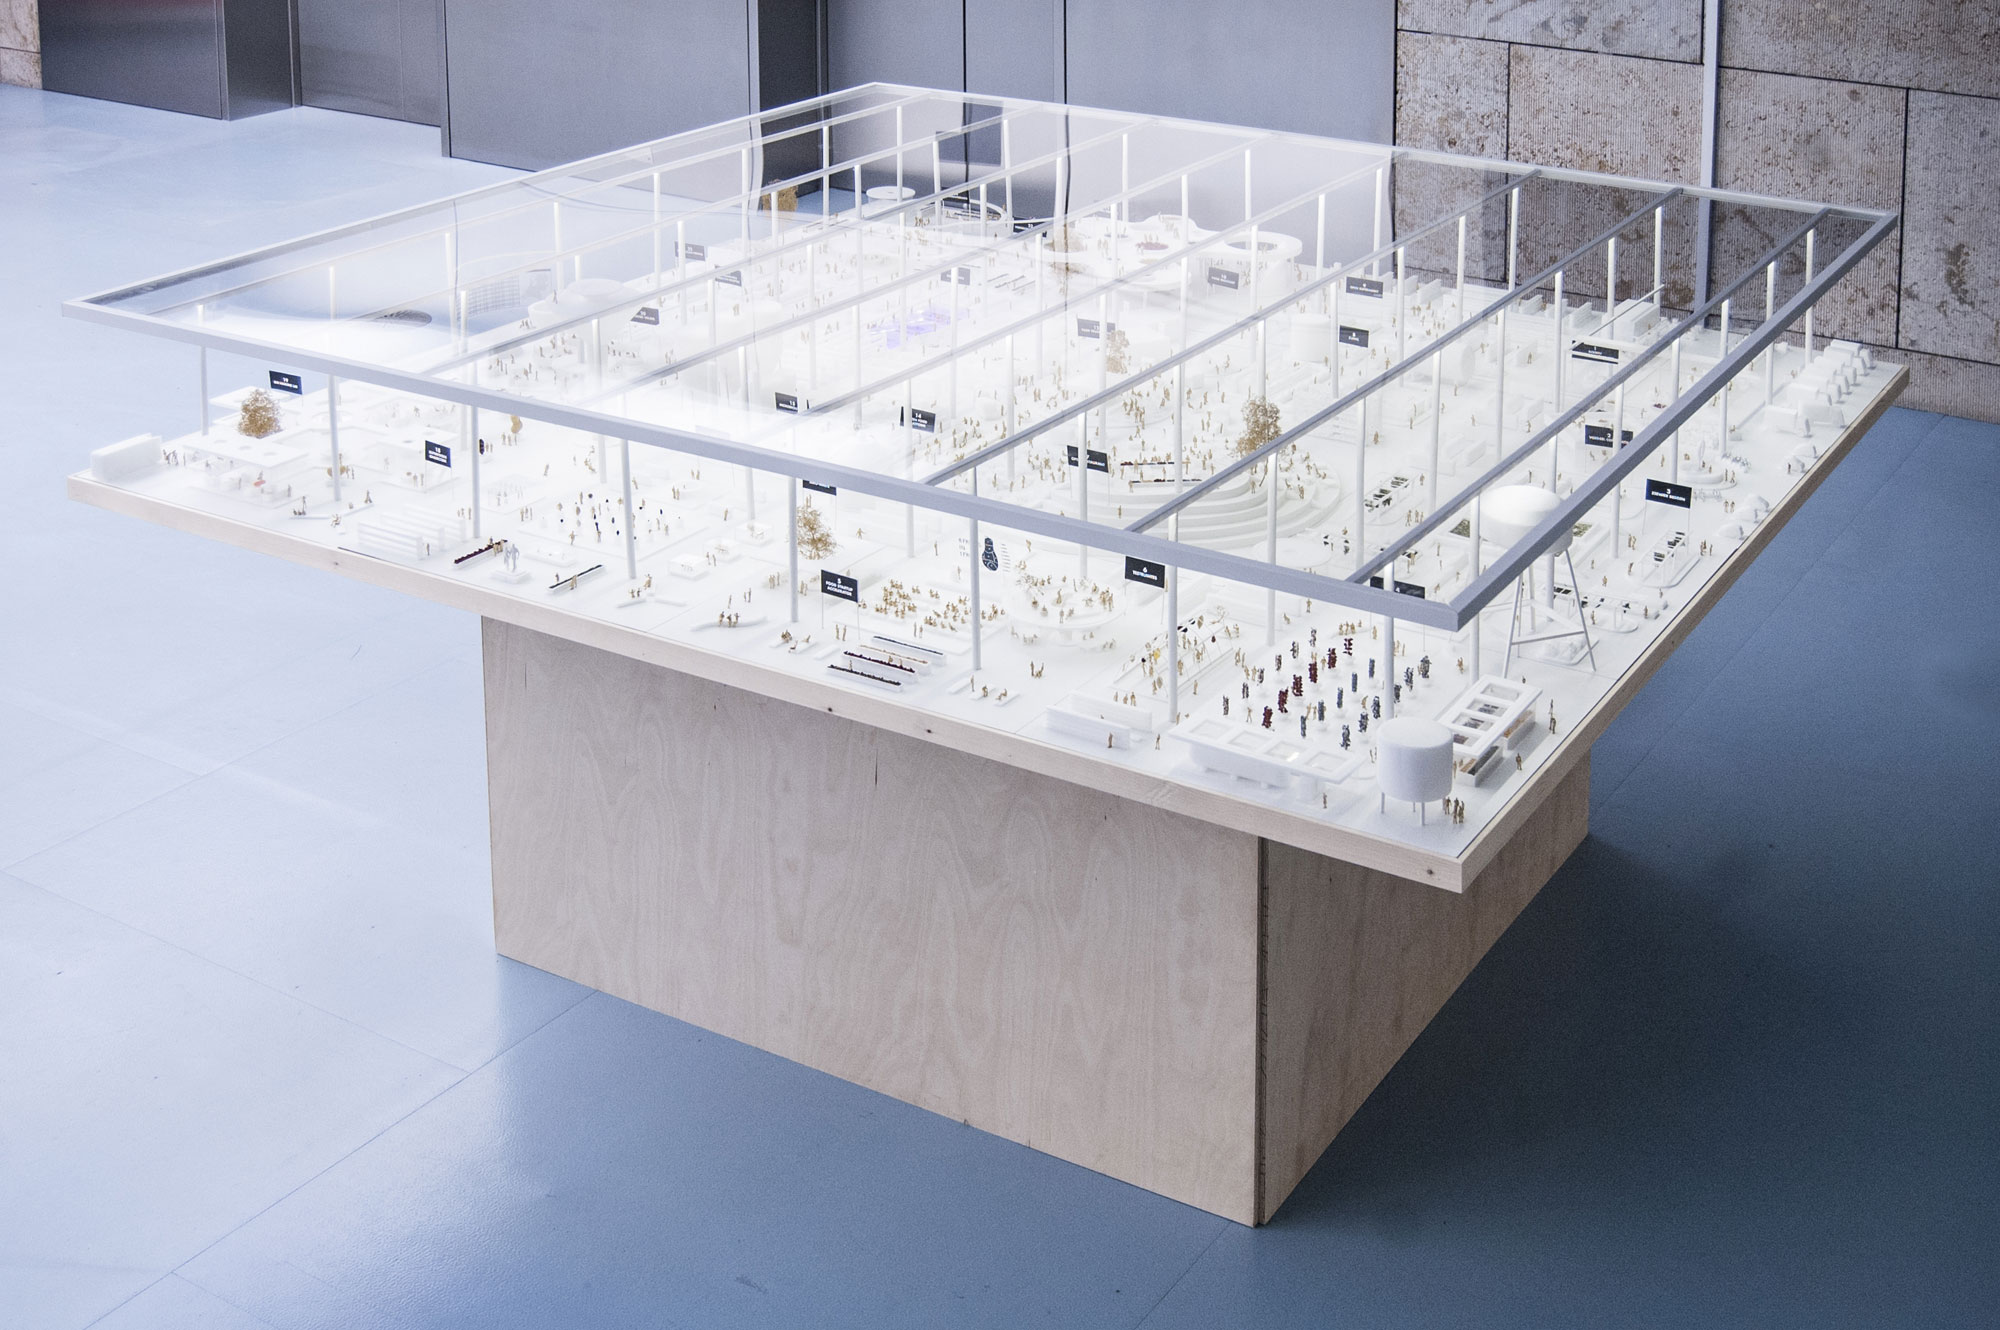 The Open Food Lab model during the Volksvlijt exhibition in the Amsterdam Public Library